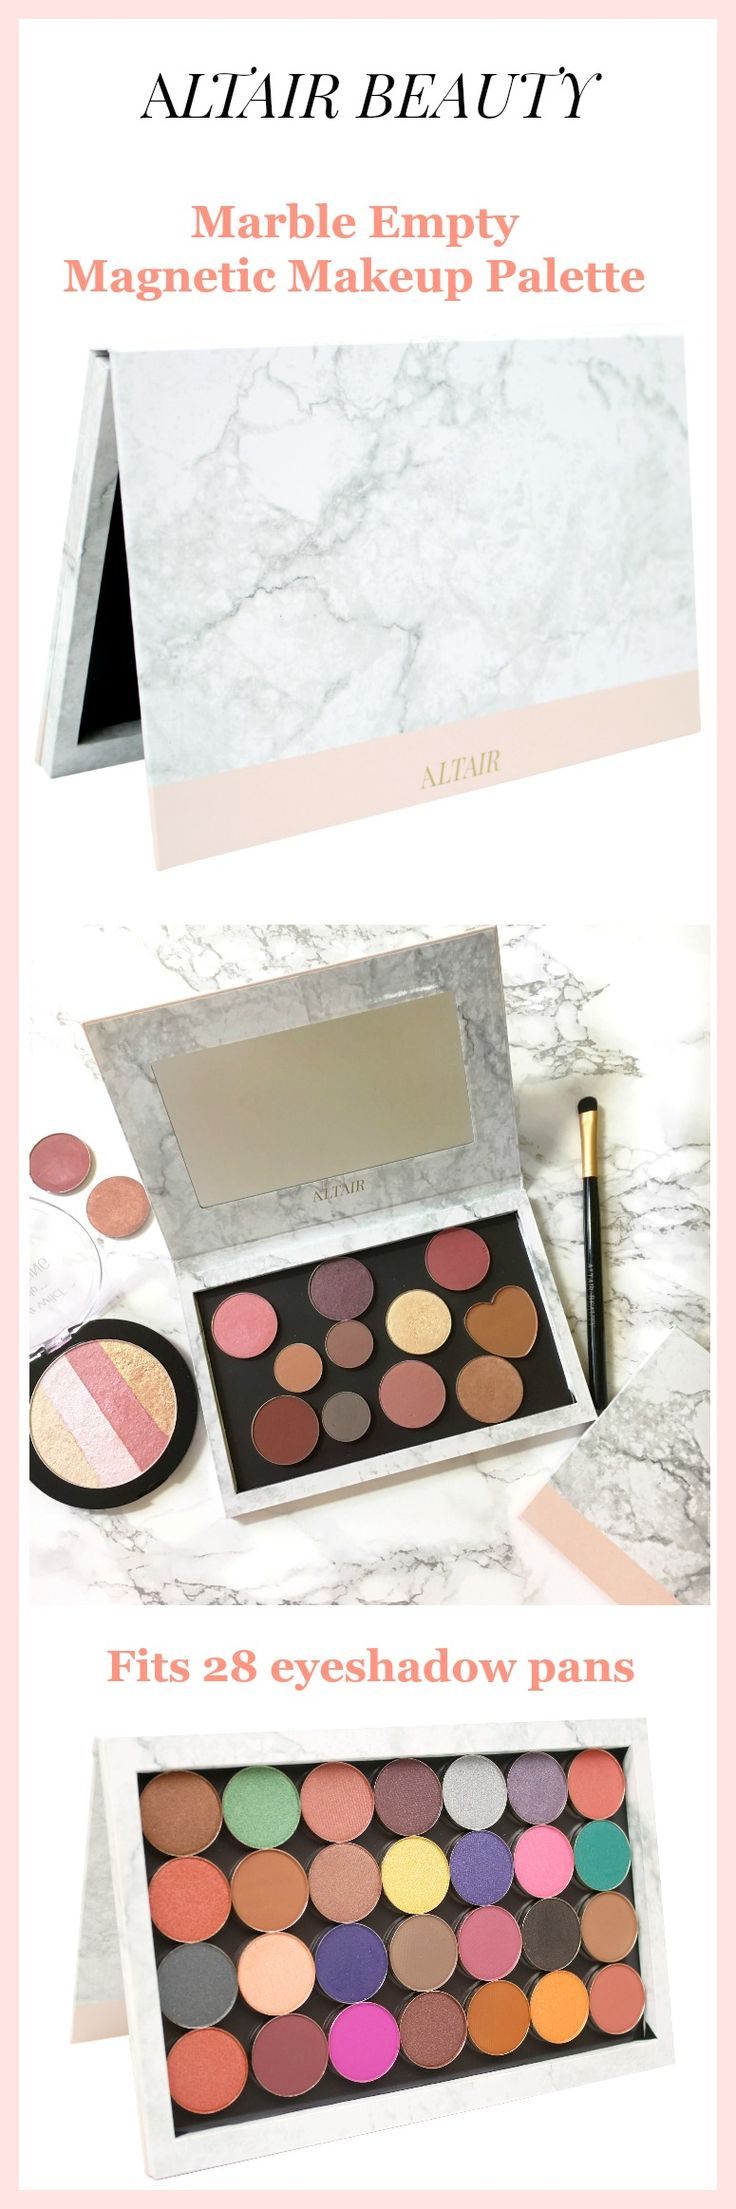 Marble Depotting Magnetic Makeup Palette by Altair Beauty with 10 pcs Metal Stickers.  Depot Eyeshadows, Blush, Bronzer, Highlighter.  Includes free makeup spatula.  Holds 28 standard sized eyeshadow pans.  Organize your DIY beauty.